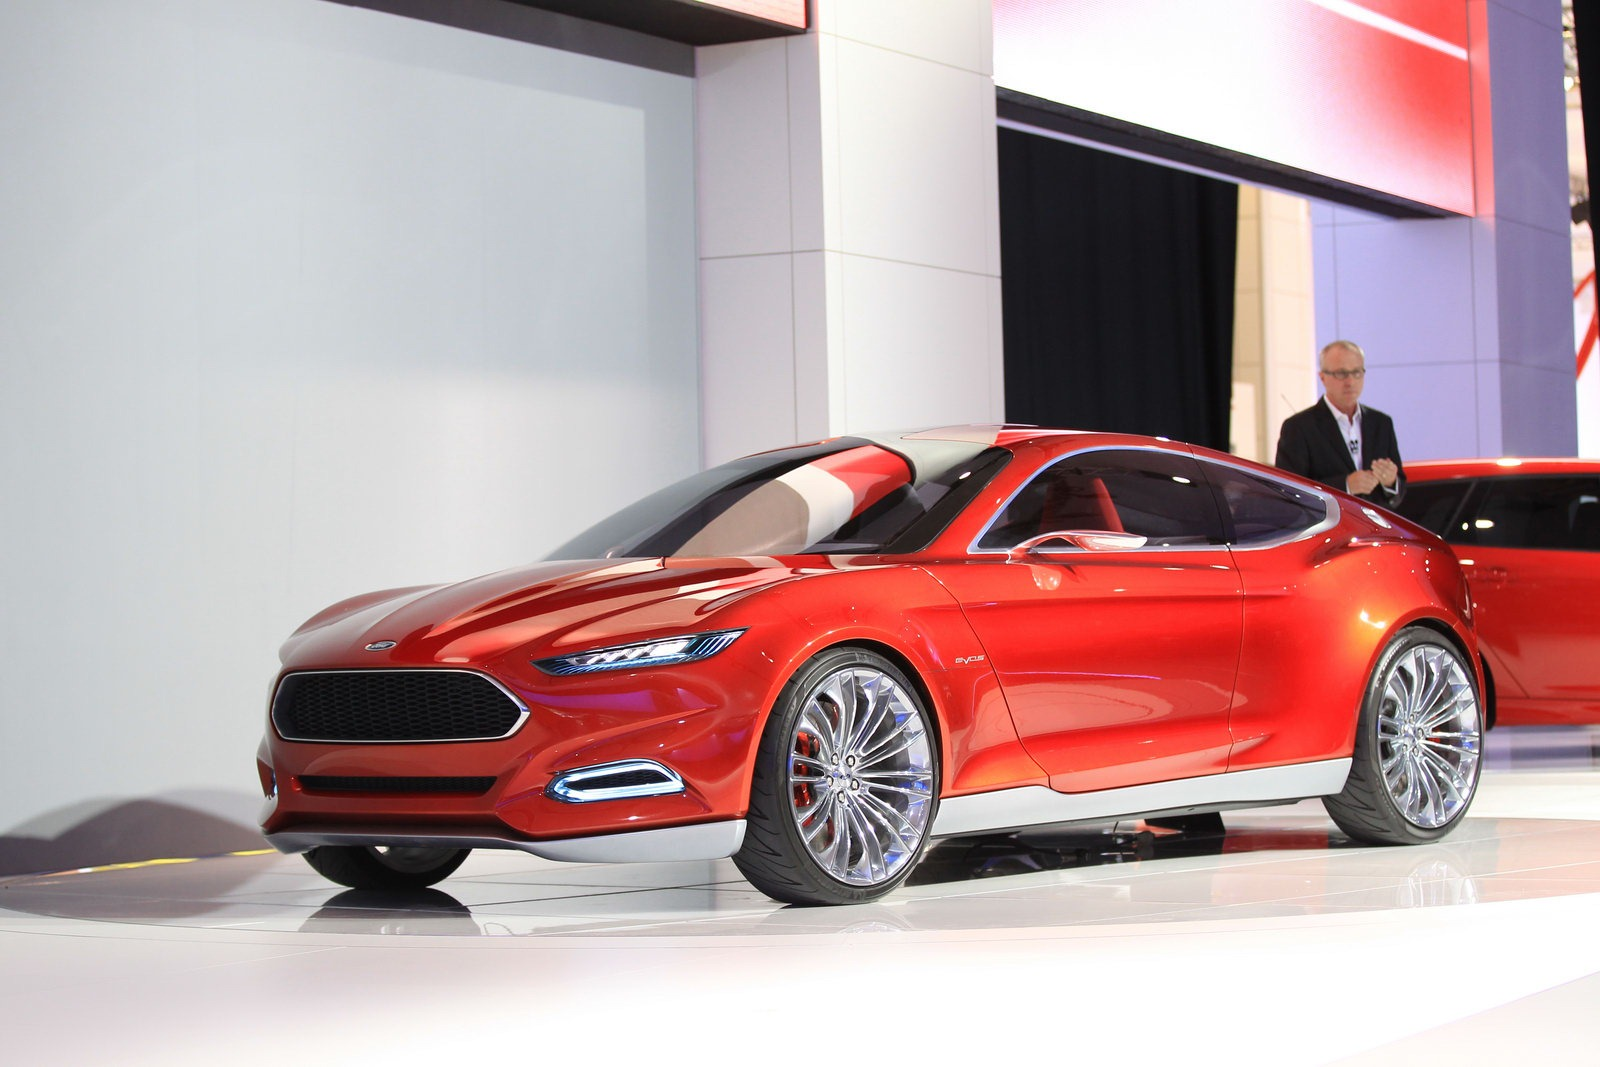 2015-ford-mustang-gt-coupe-concept-11.jpg